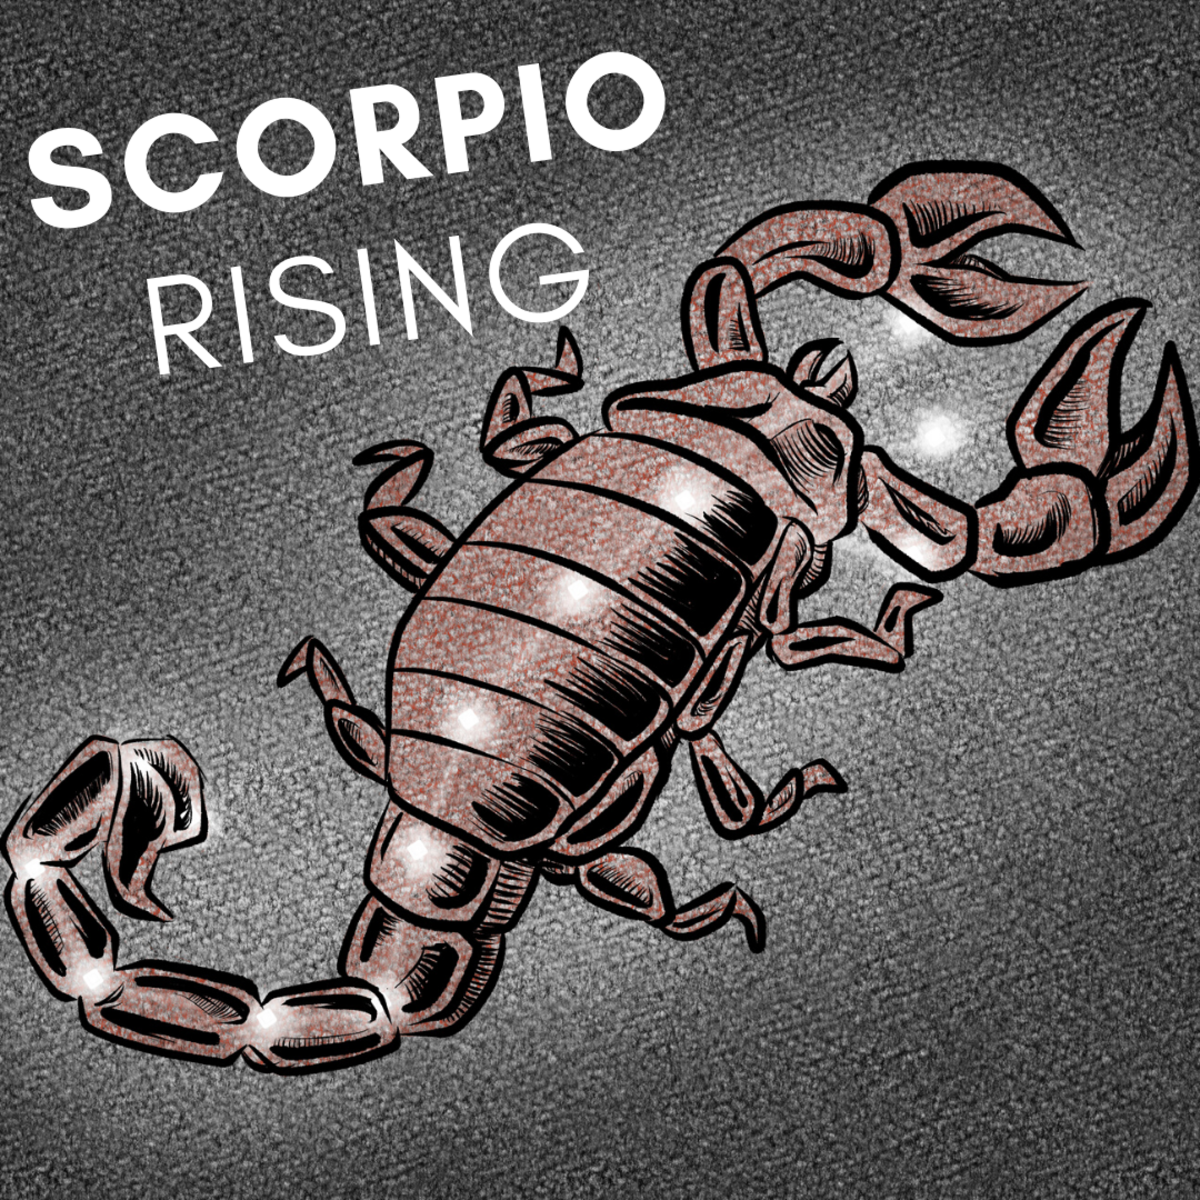 How to Understand a Scorpio Rising Sign